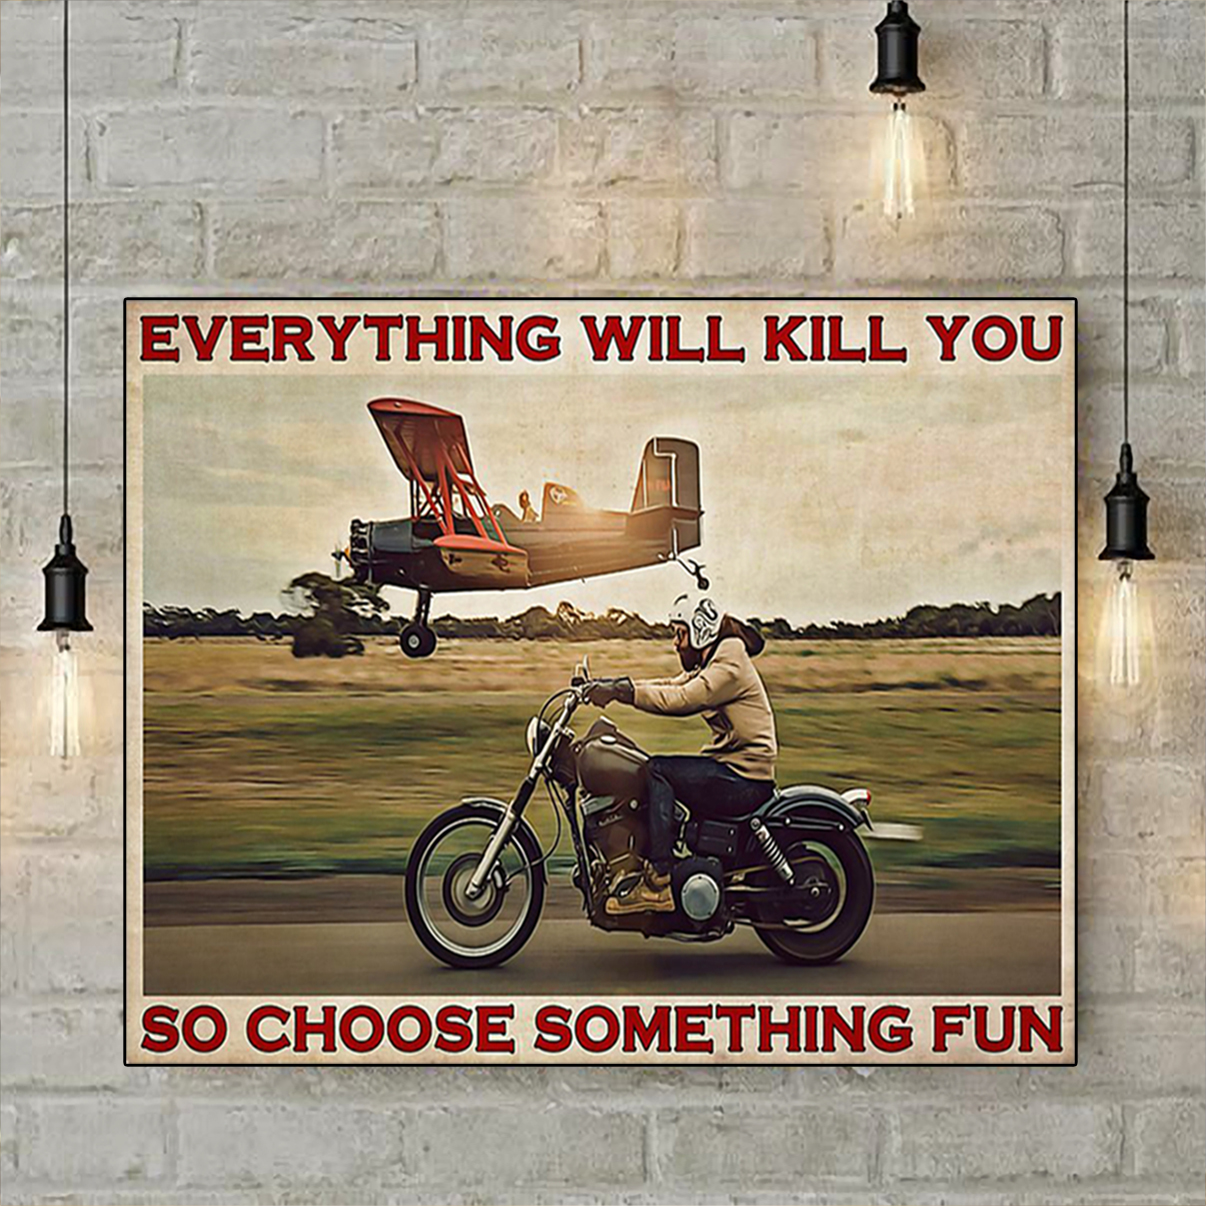 Planes motorbike everything will kill you so choose something fun poster A1